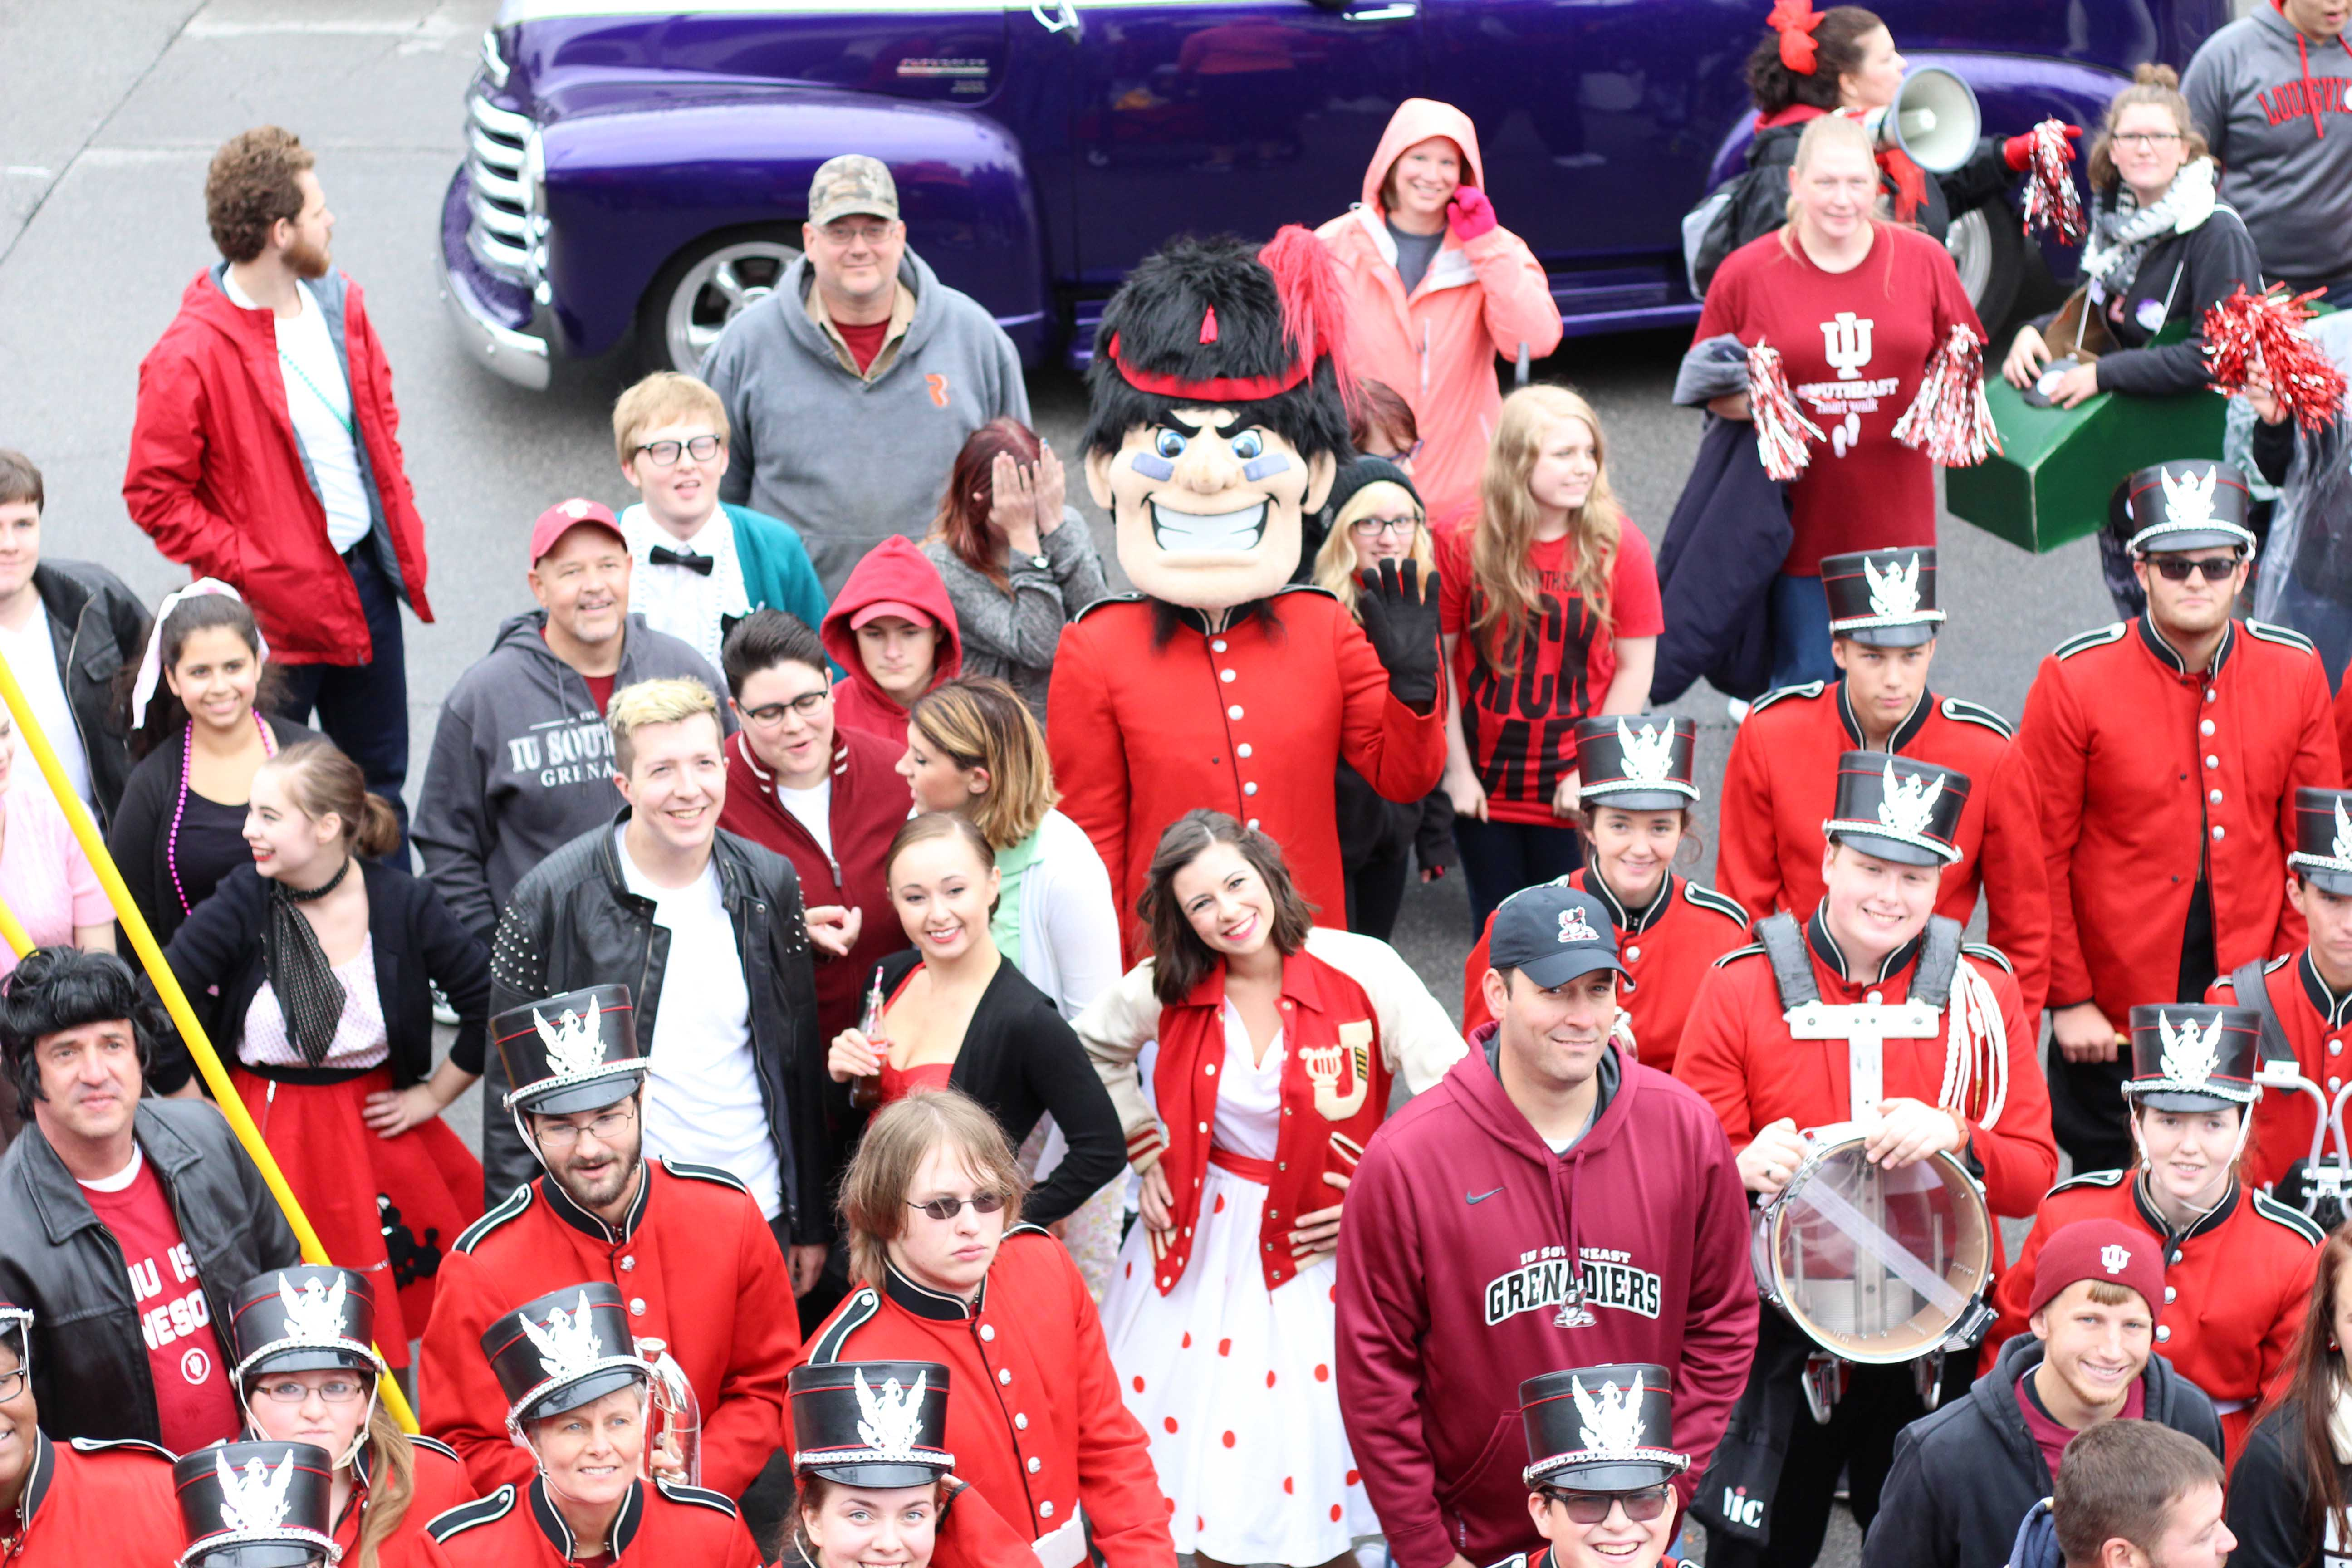 Gus+the+Grenadier+waved+as+the+IU+Southeast+float+makes+it+to+the+end+of+the+route.++This+year%2C+all+the+IU+Southeast+Athletes+joined+him+in+the+parade.